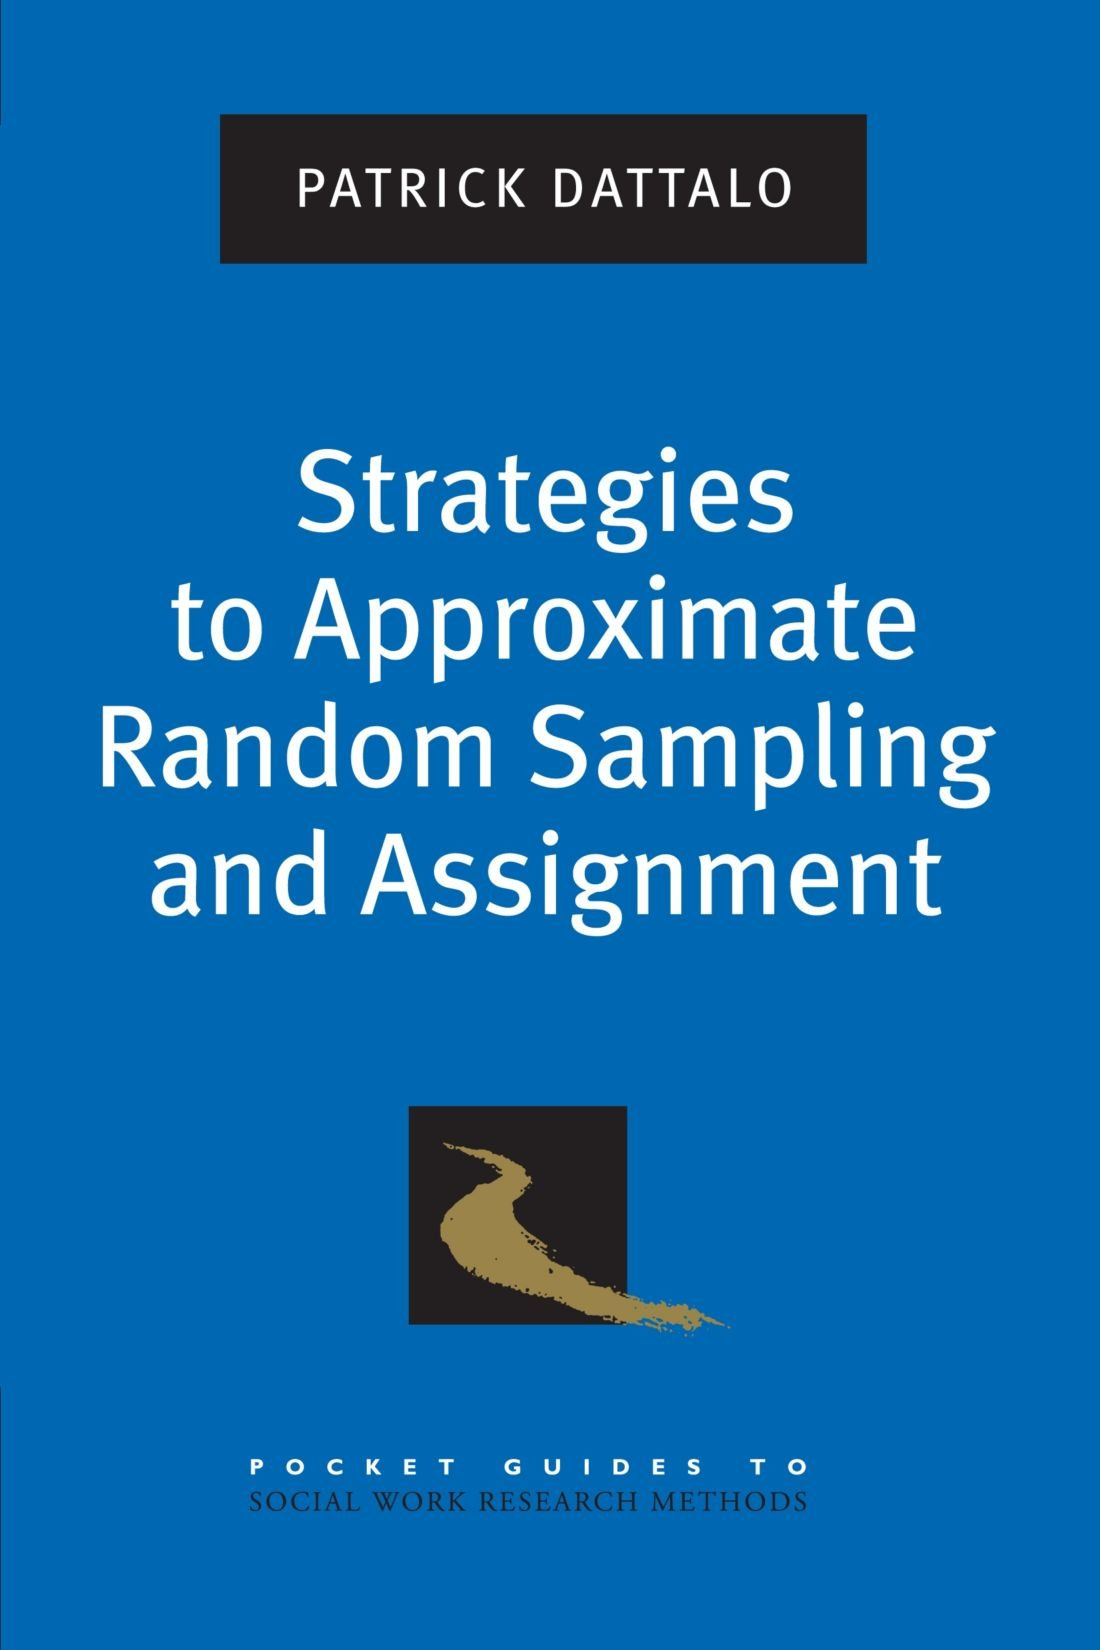 Strategies to Approximate Random Sampling and Assignment (Pocket Guides to Social Work Research Methods)